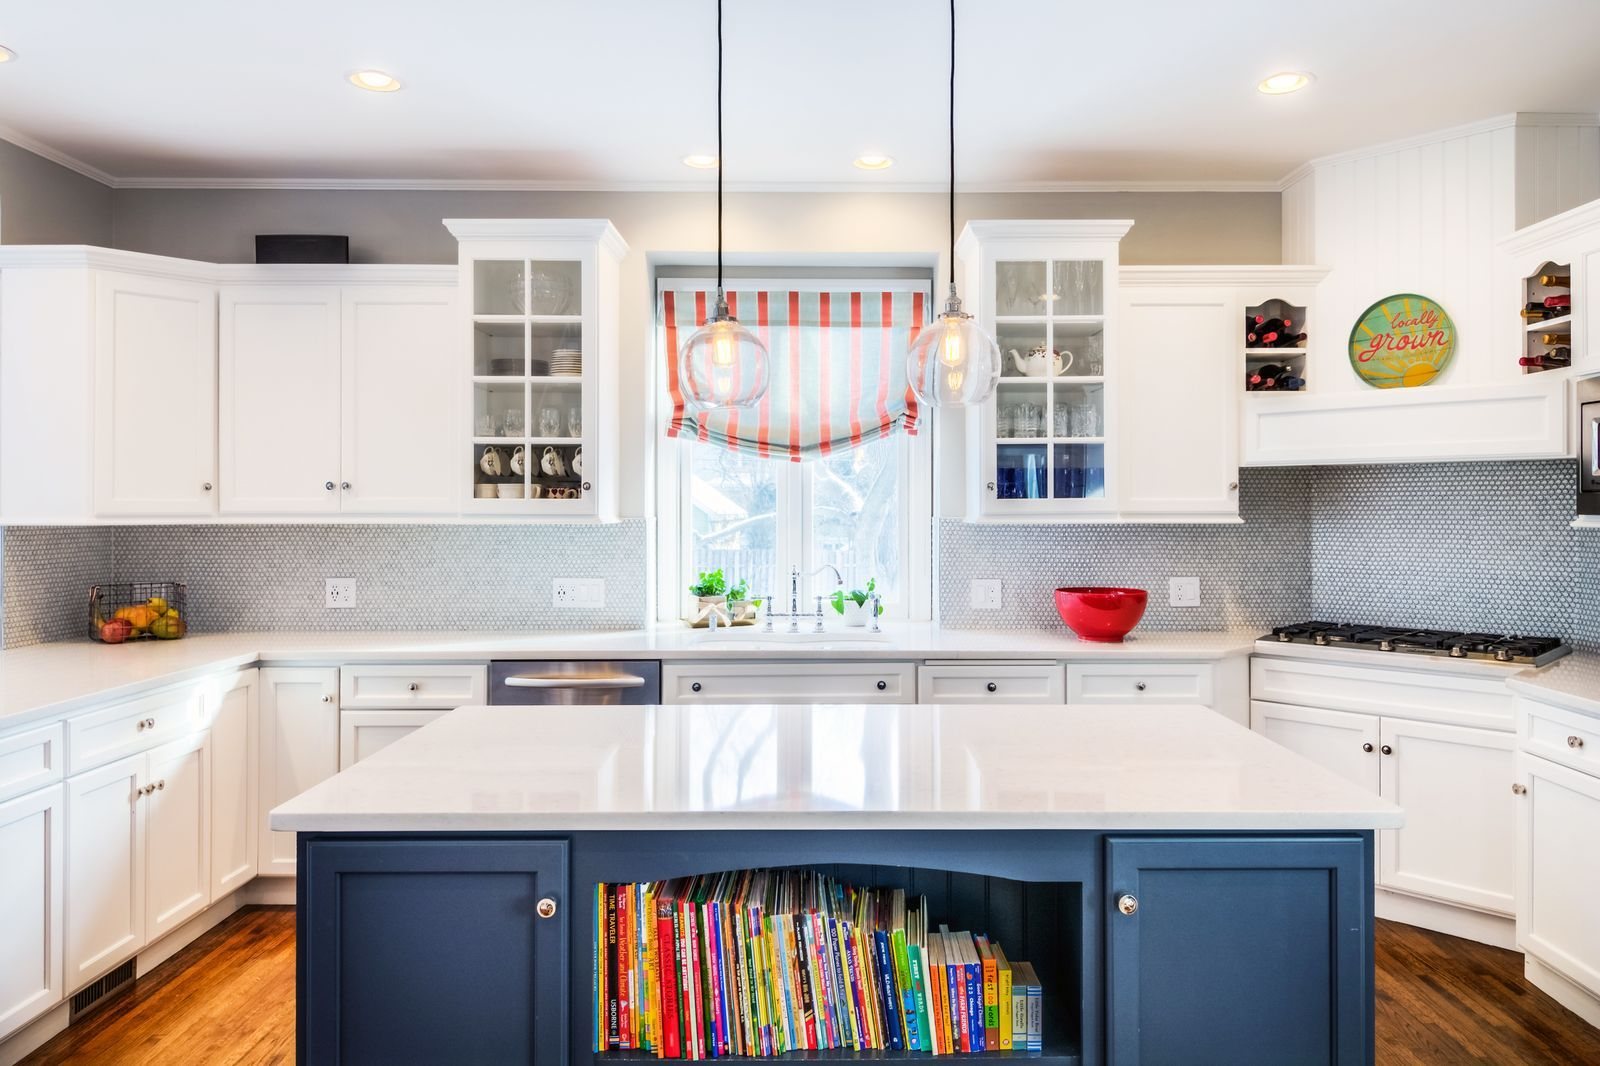 10 Unique Ways to Make a Beautiful First Impression in Your Kitchen - Contemporary kitchen, Kitchen cabinets, Kitchen, Glass cabinet doors, Home, Cabinet - These changes make a big (and unexpected) impact